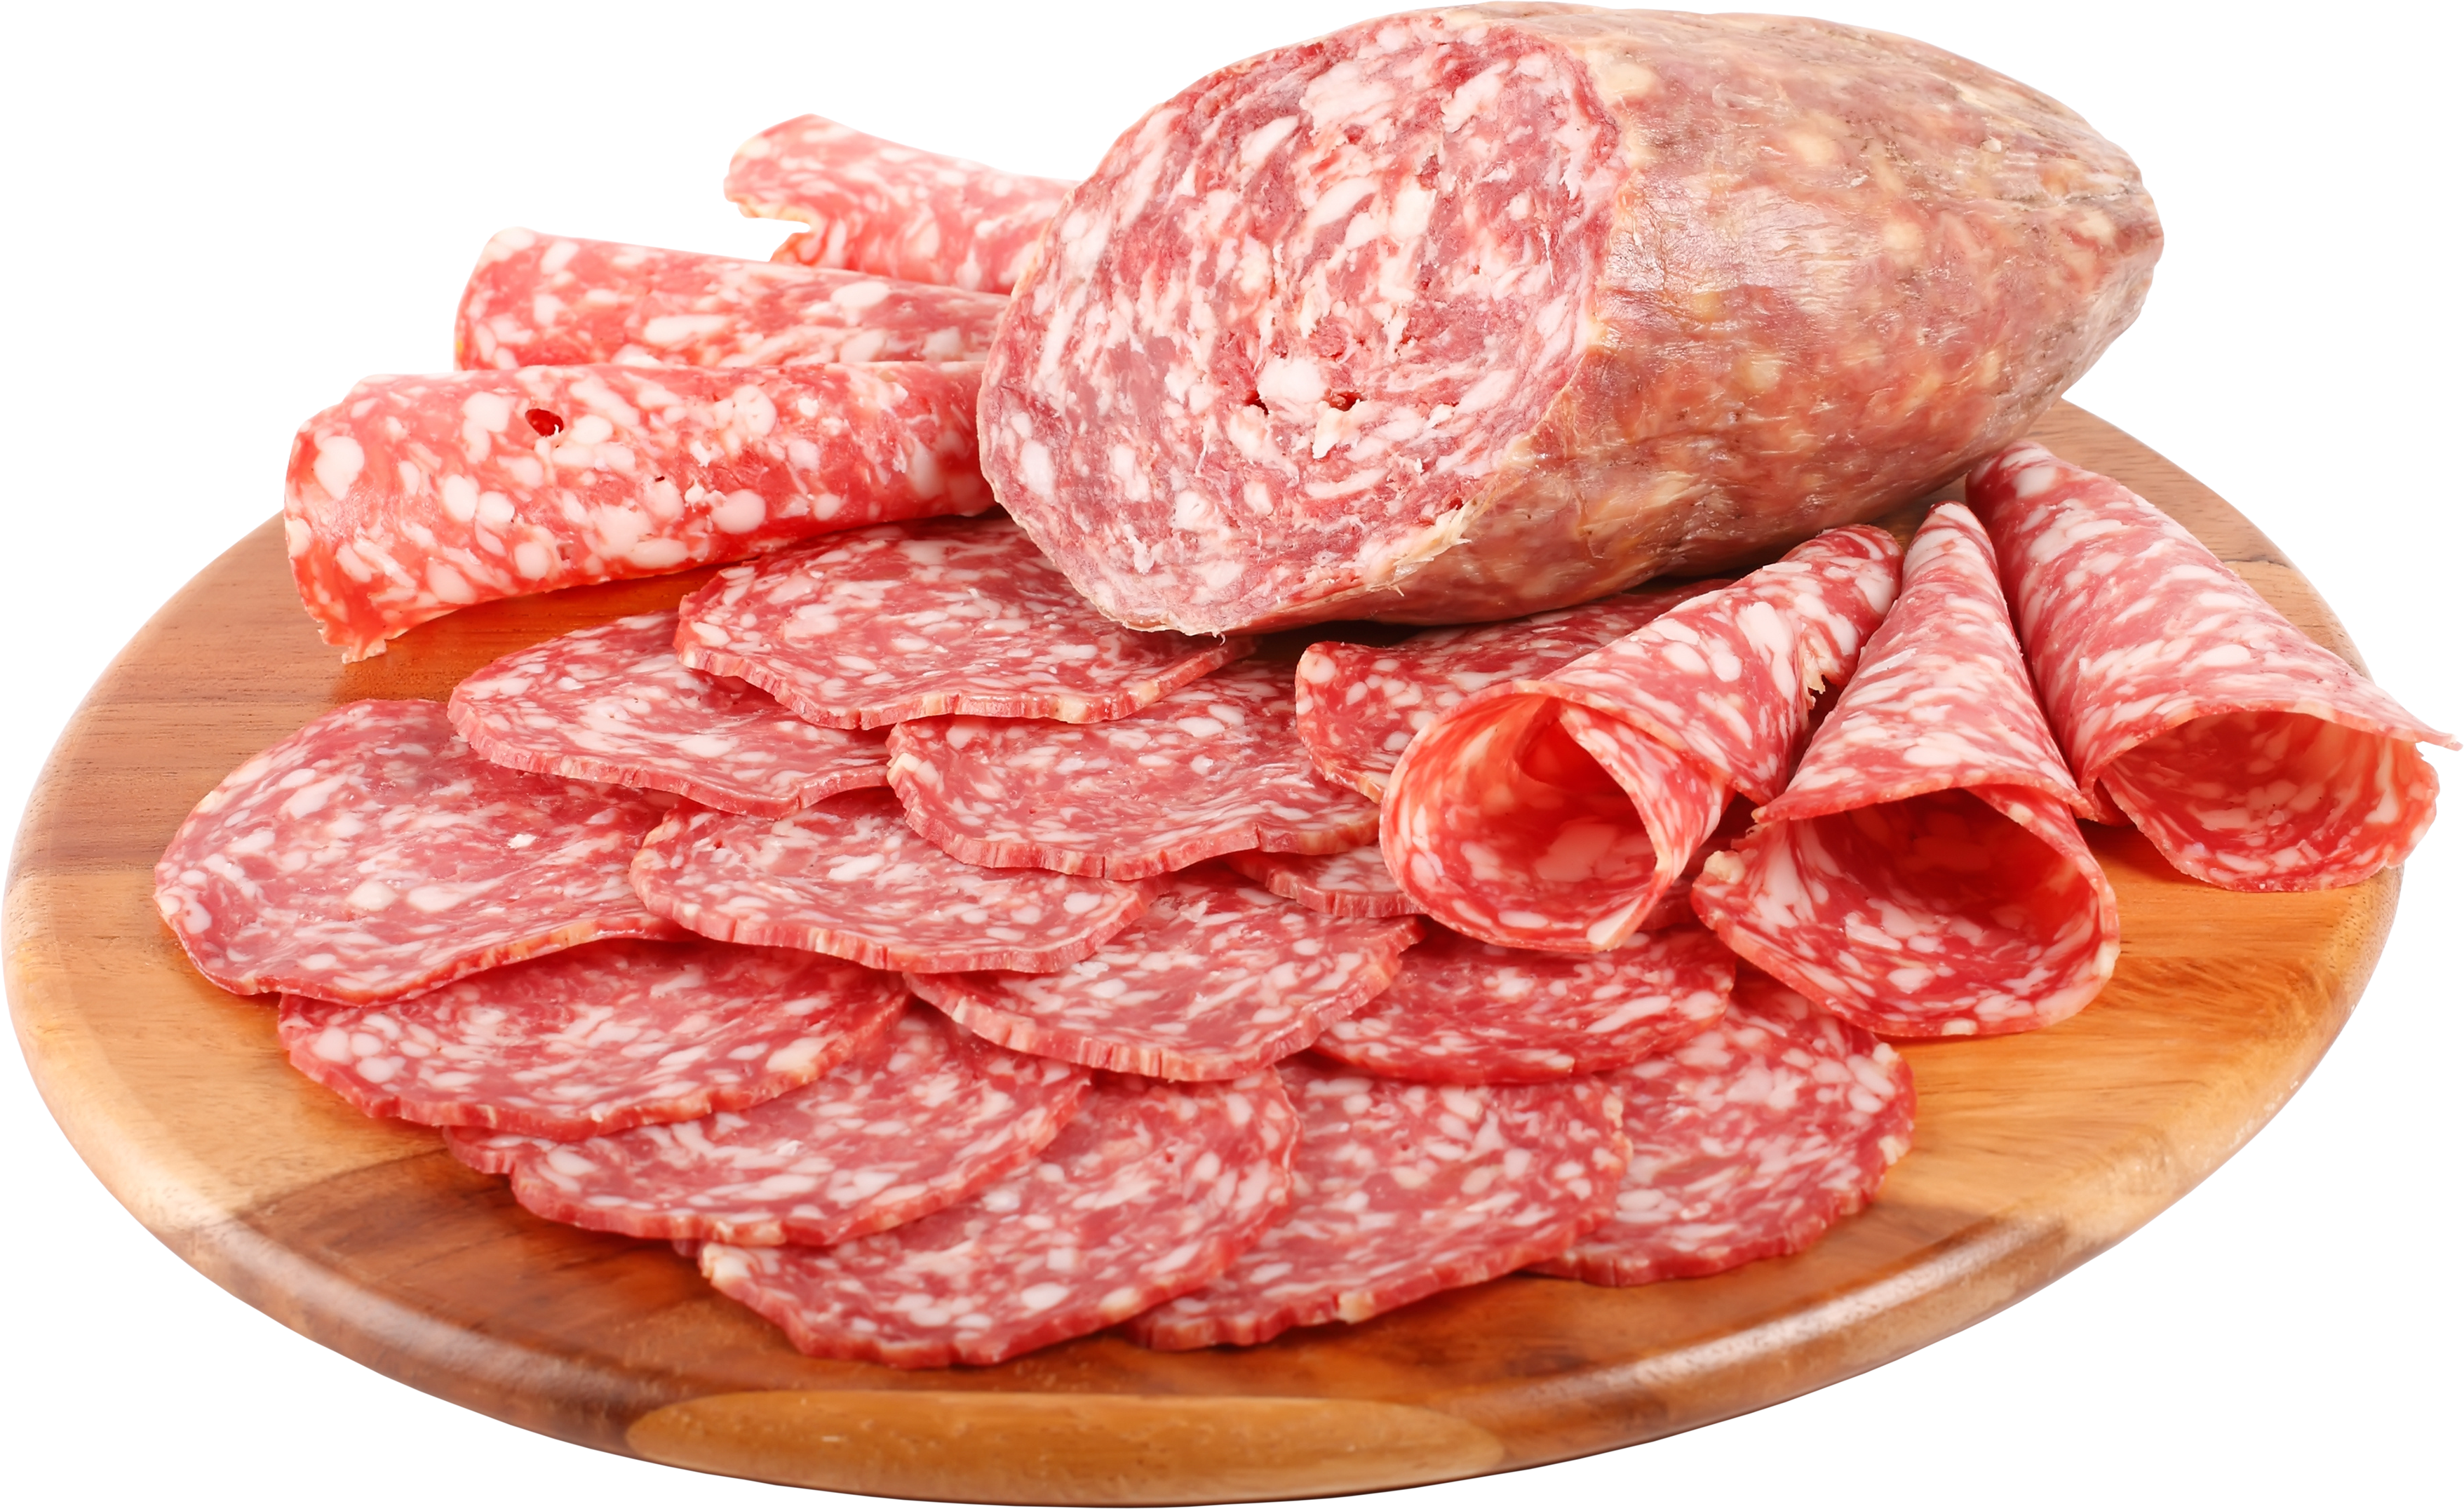 Sausage PNG Images, Free Pictures Sausage PNG image #44454